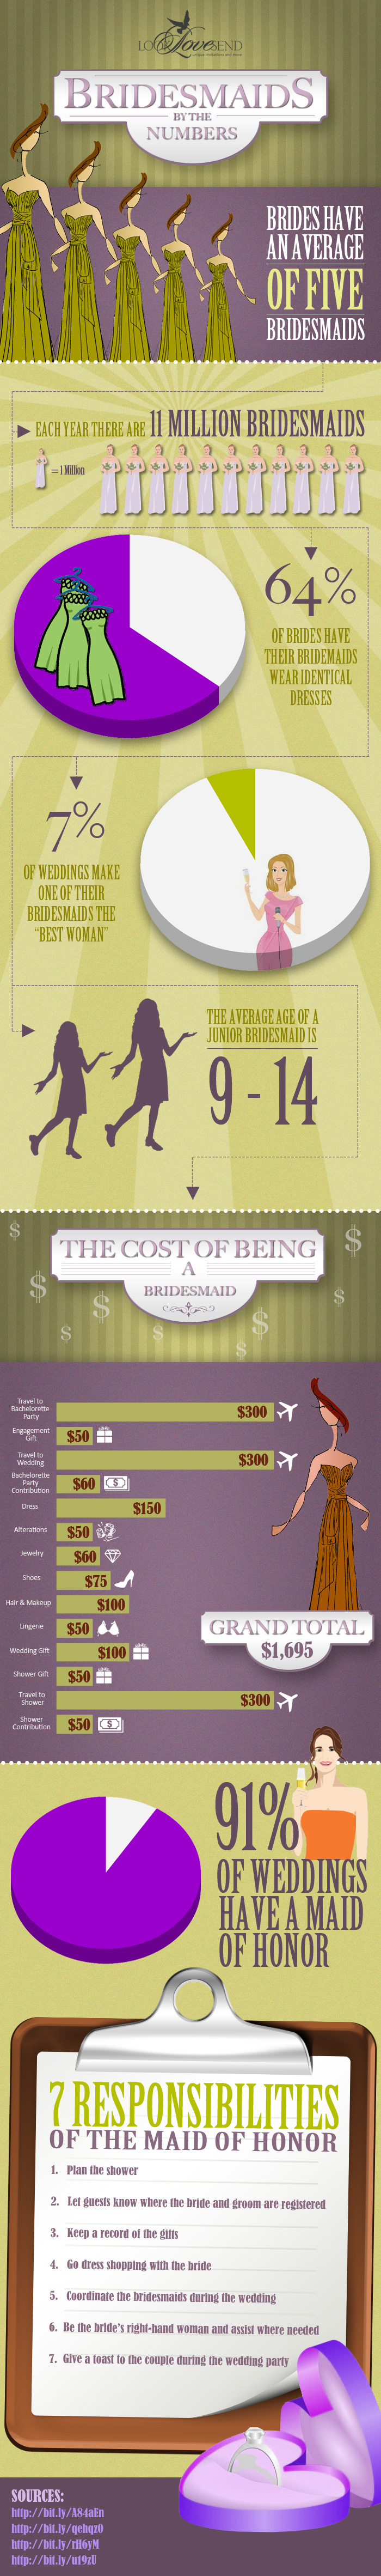 Bridesmaids Statistics and Facts